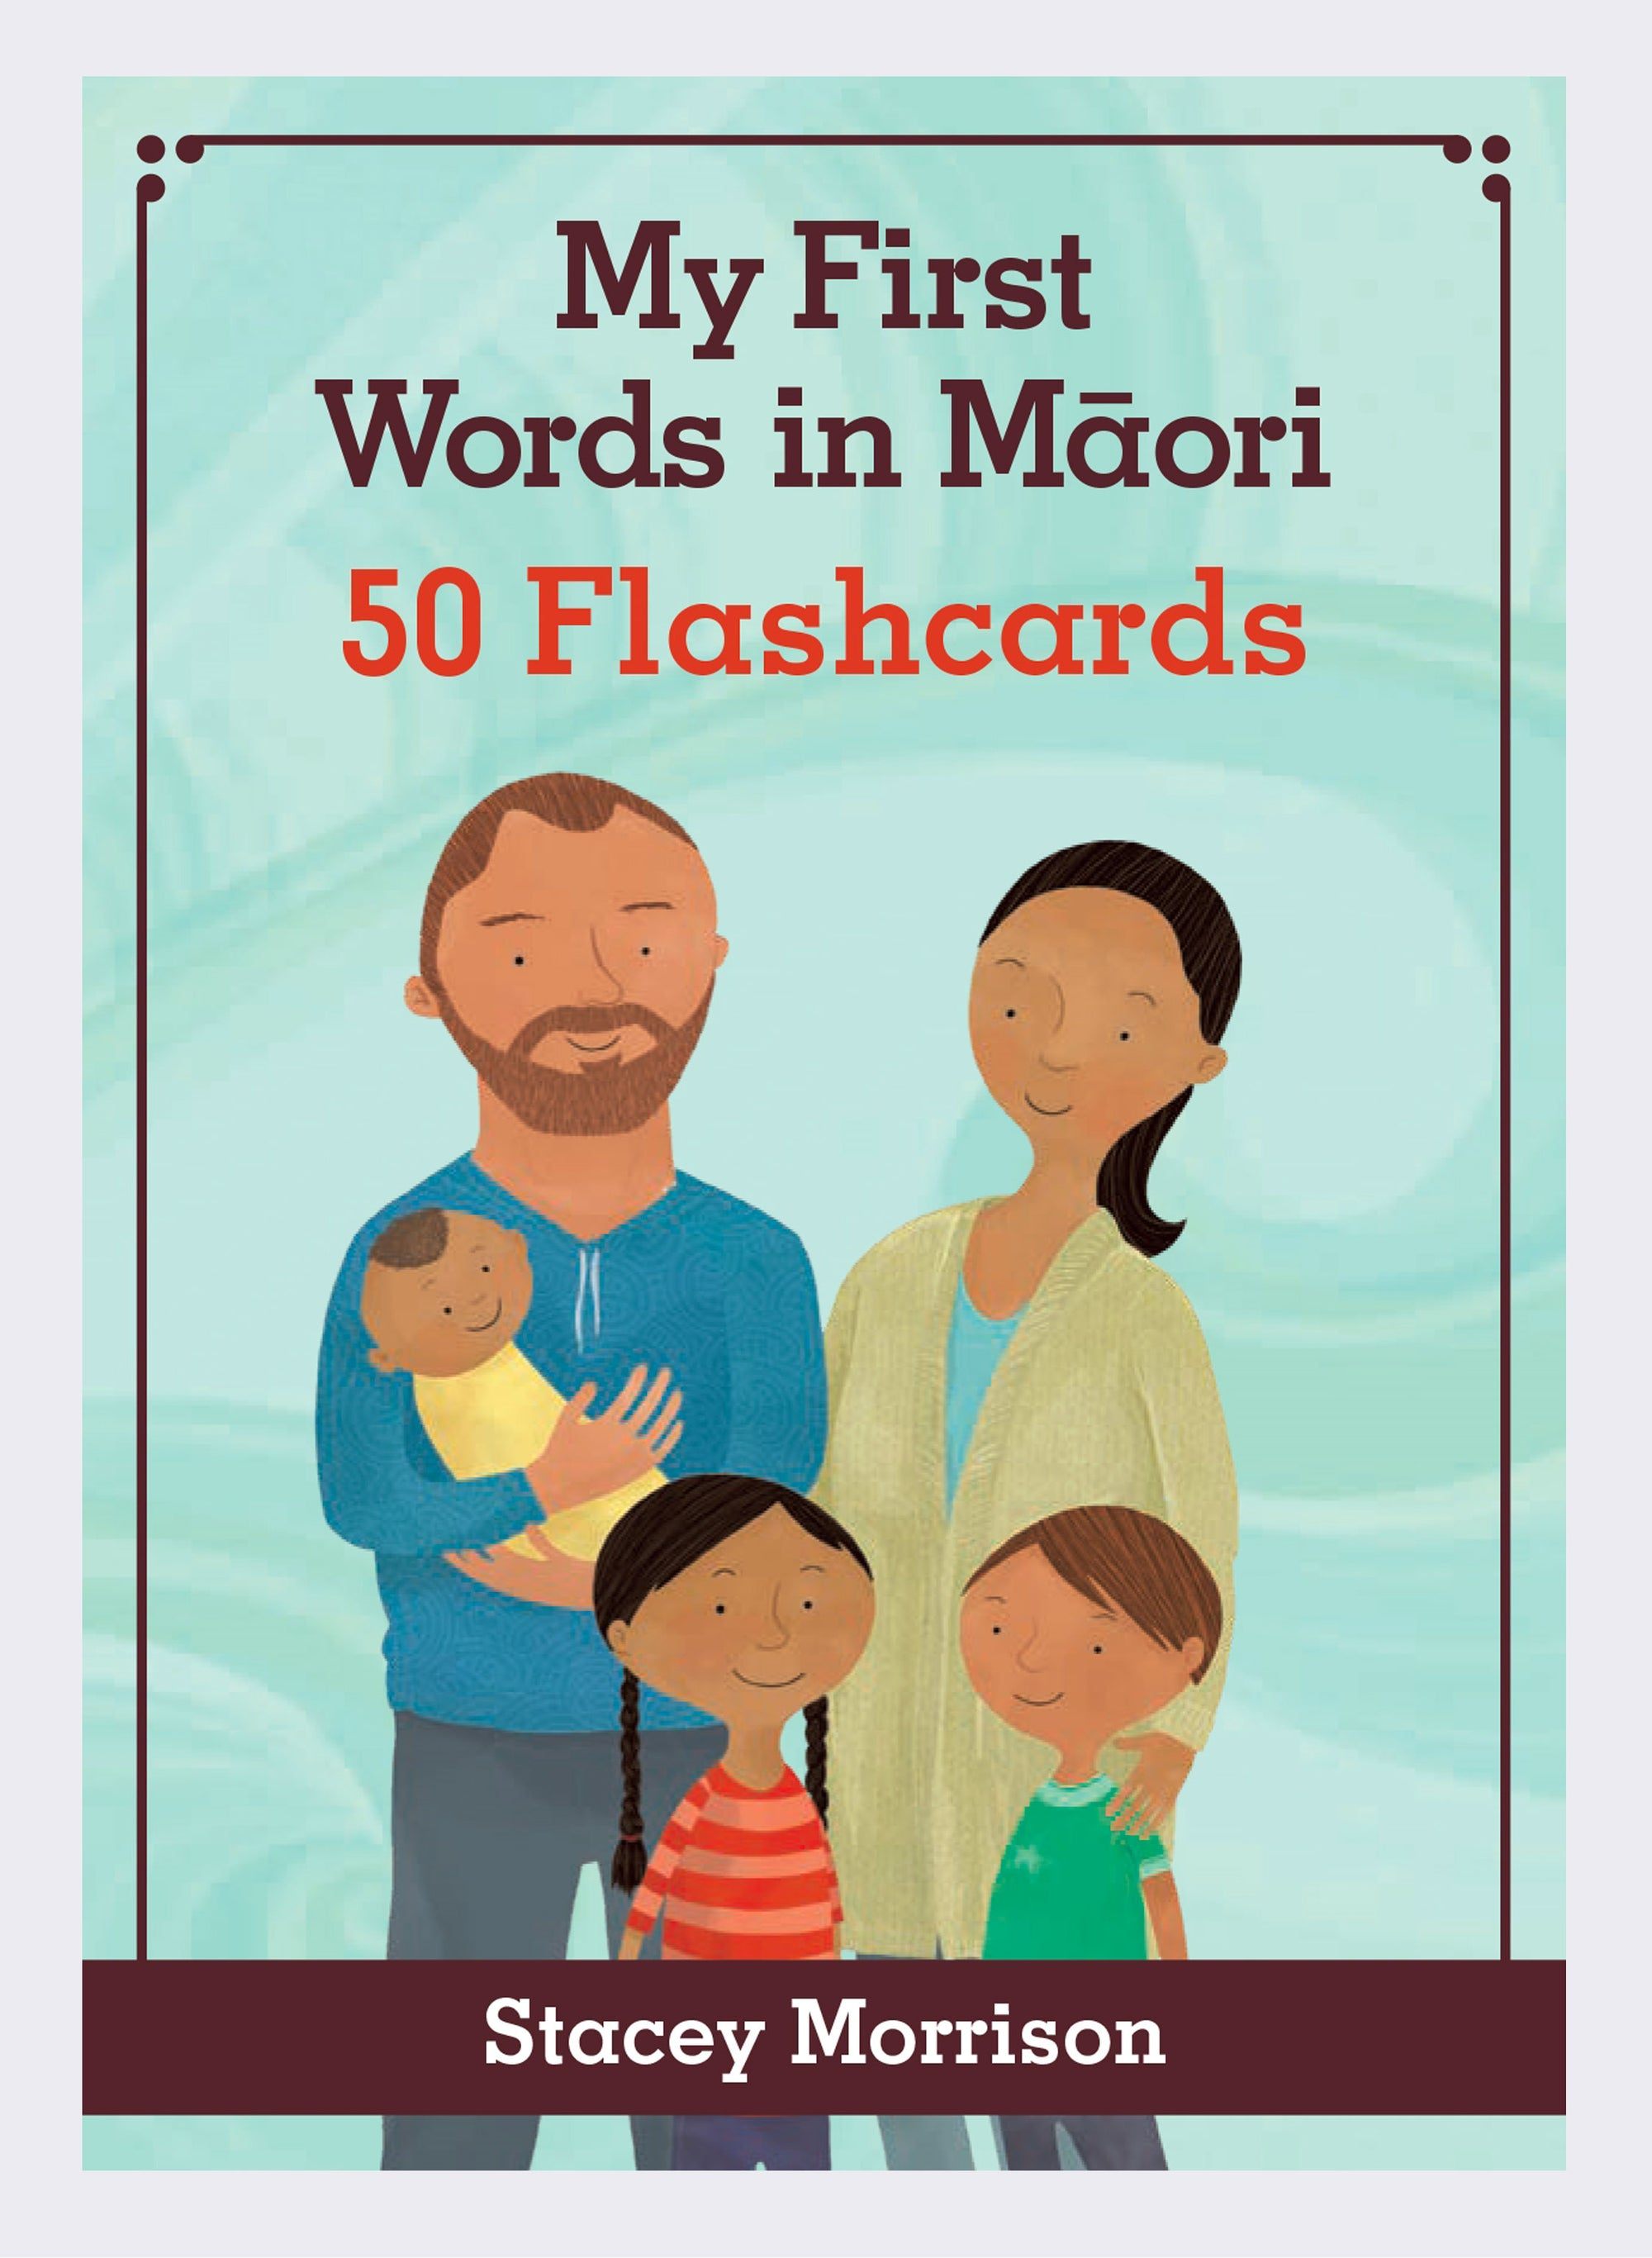 My First Words in Maori Flashcards